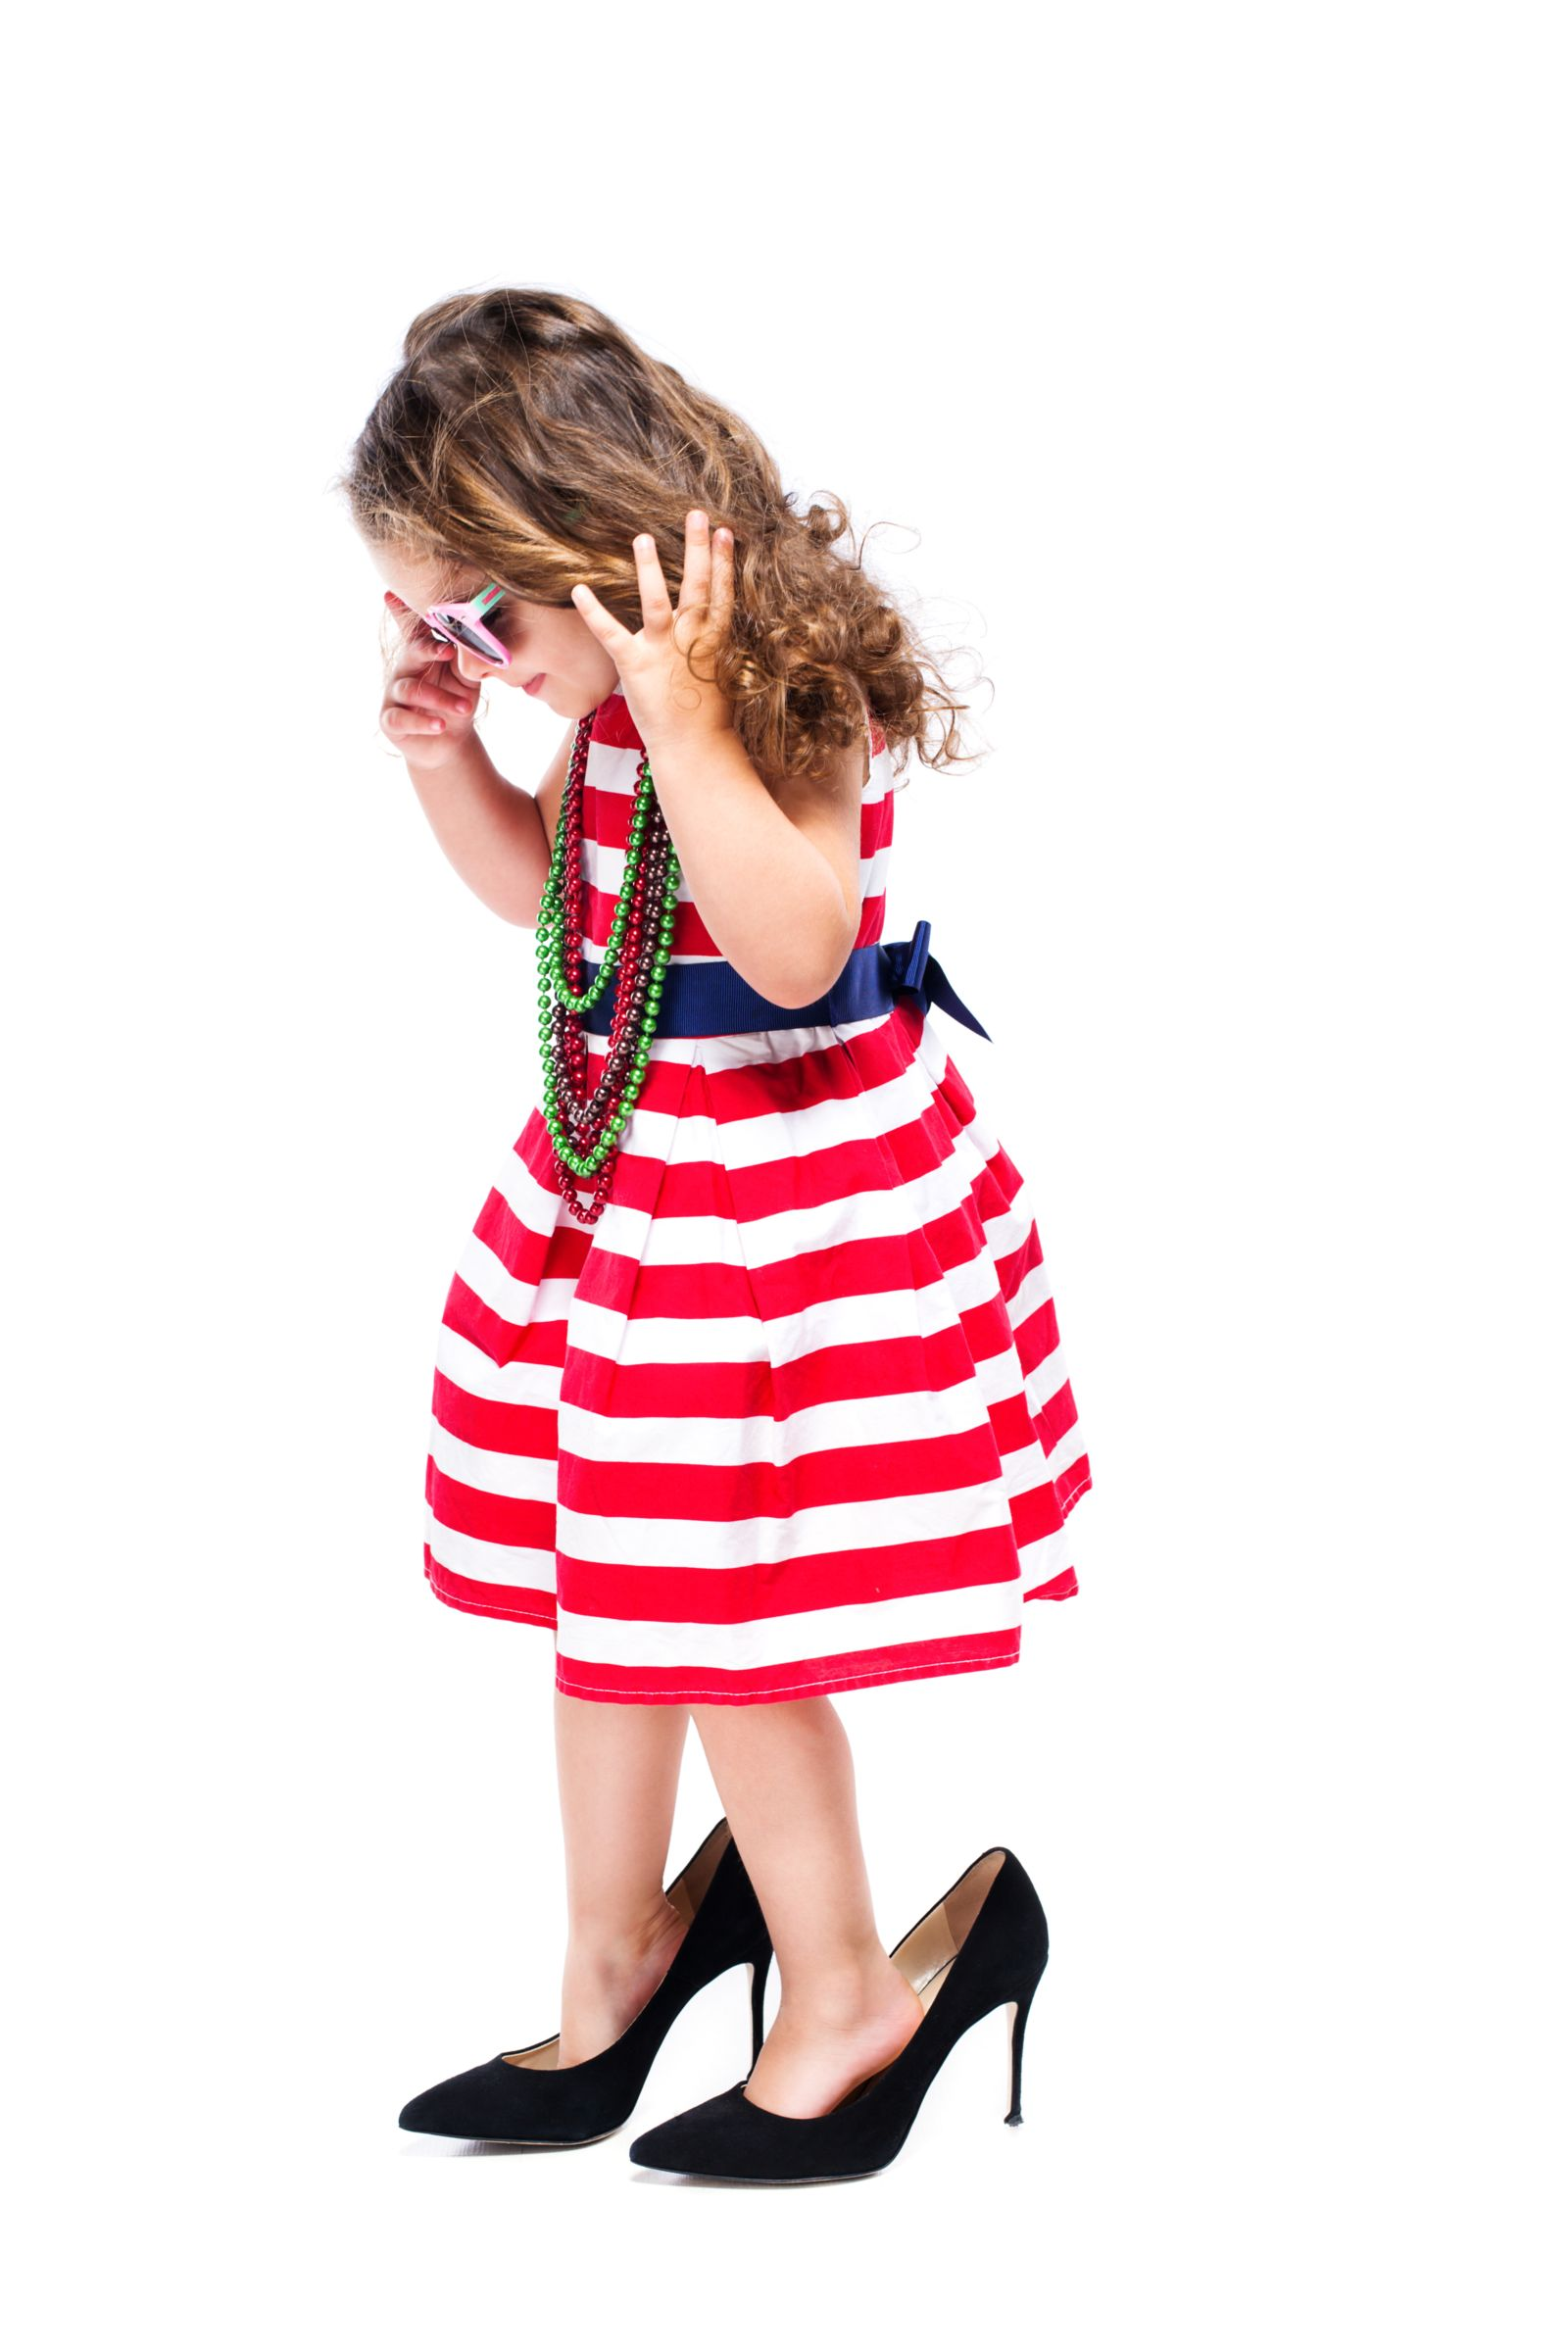 Sure, this is a cute look...but heels outside of dressup are damaging to a child's feet